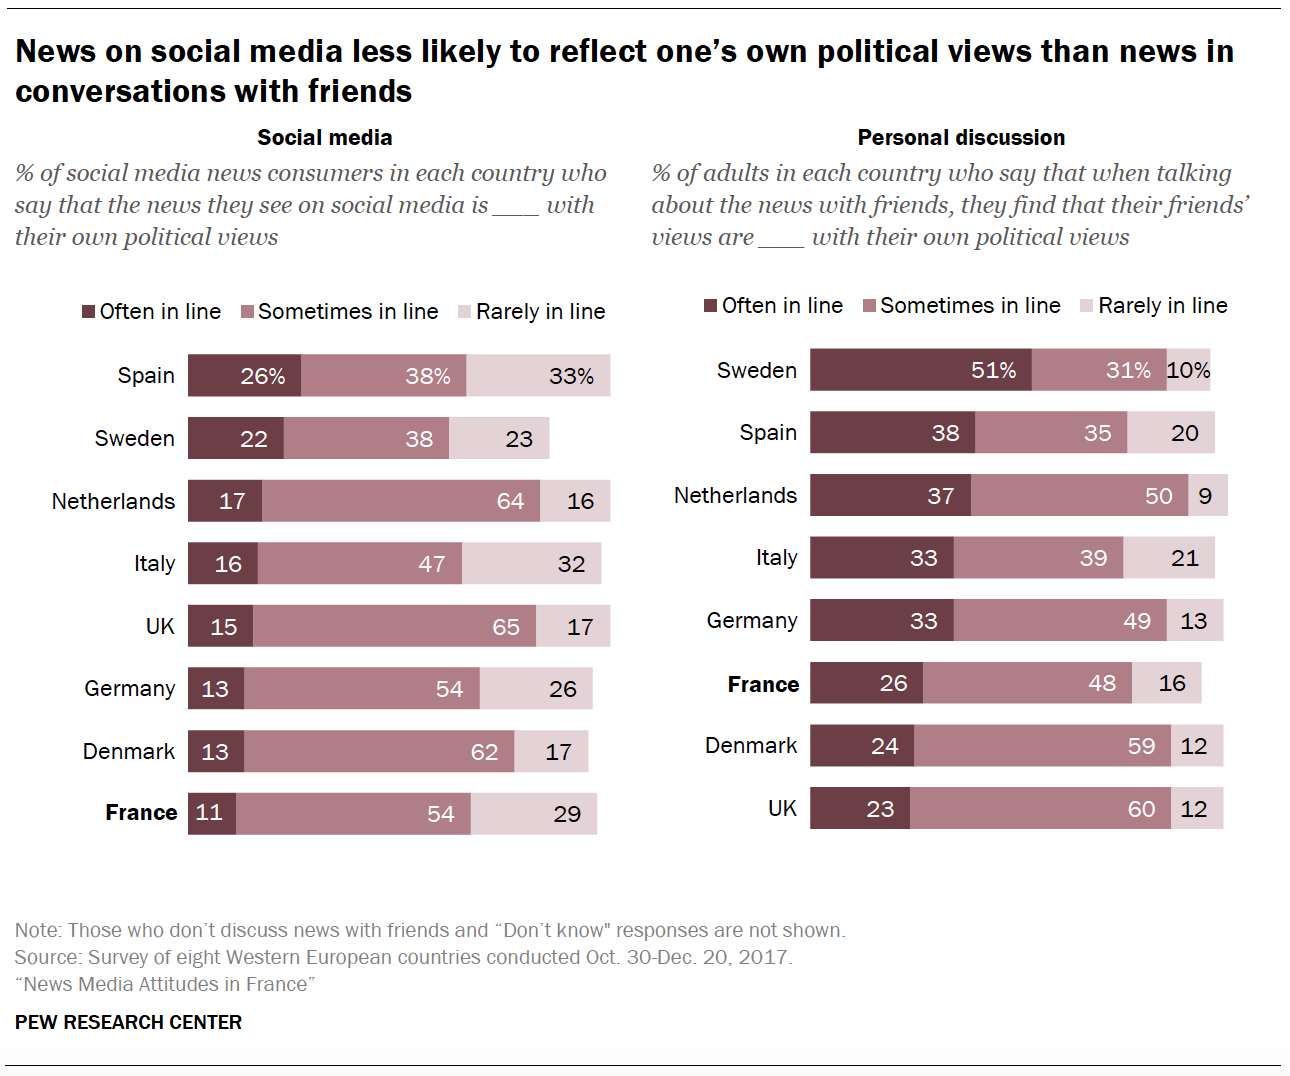 News on social media less likely to reflect one's own political views than news in conversations with friends